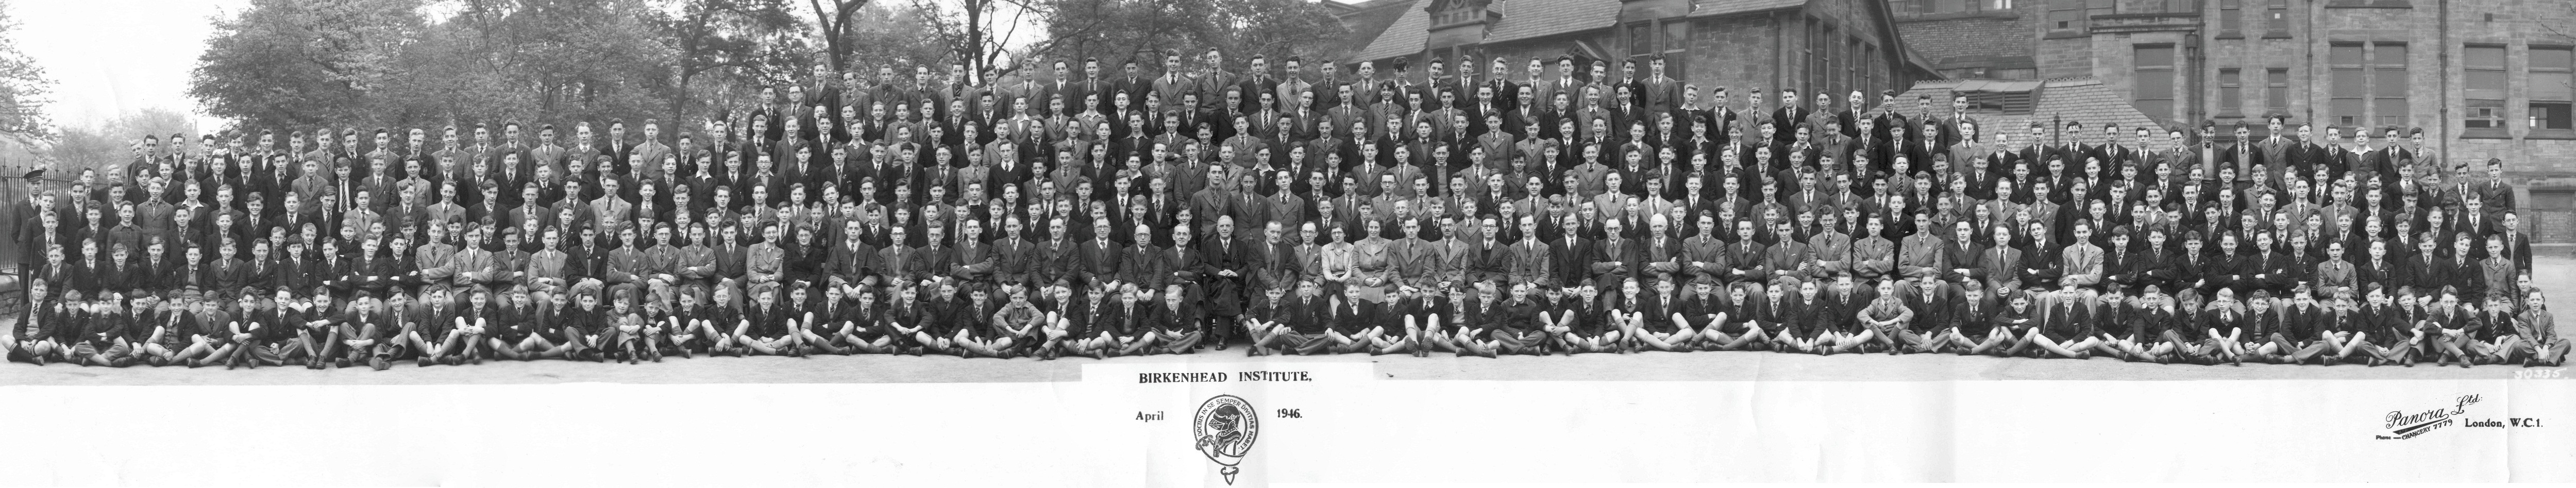 Whole School Photograph - 1946